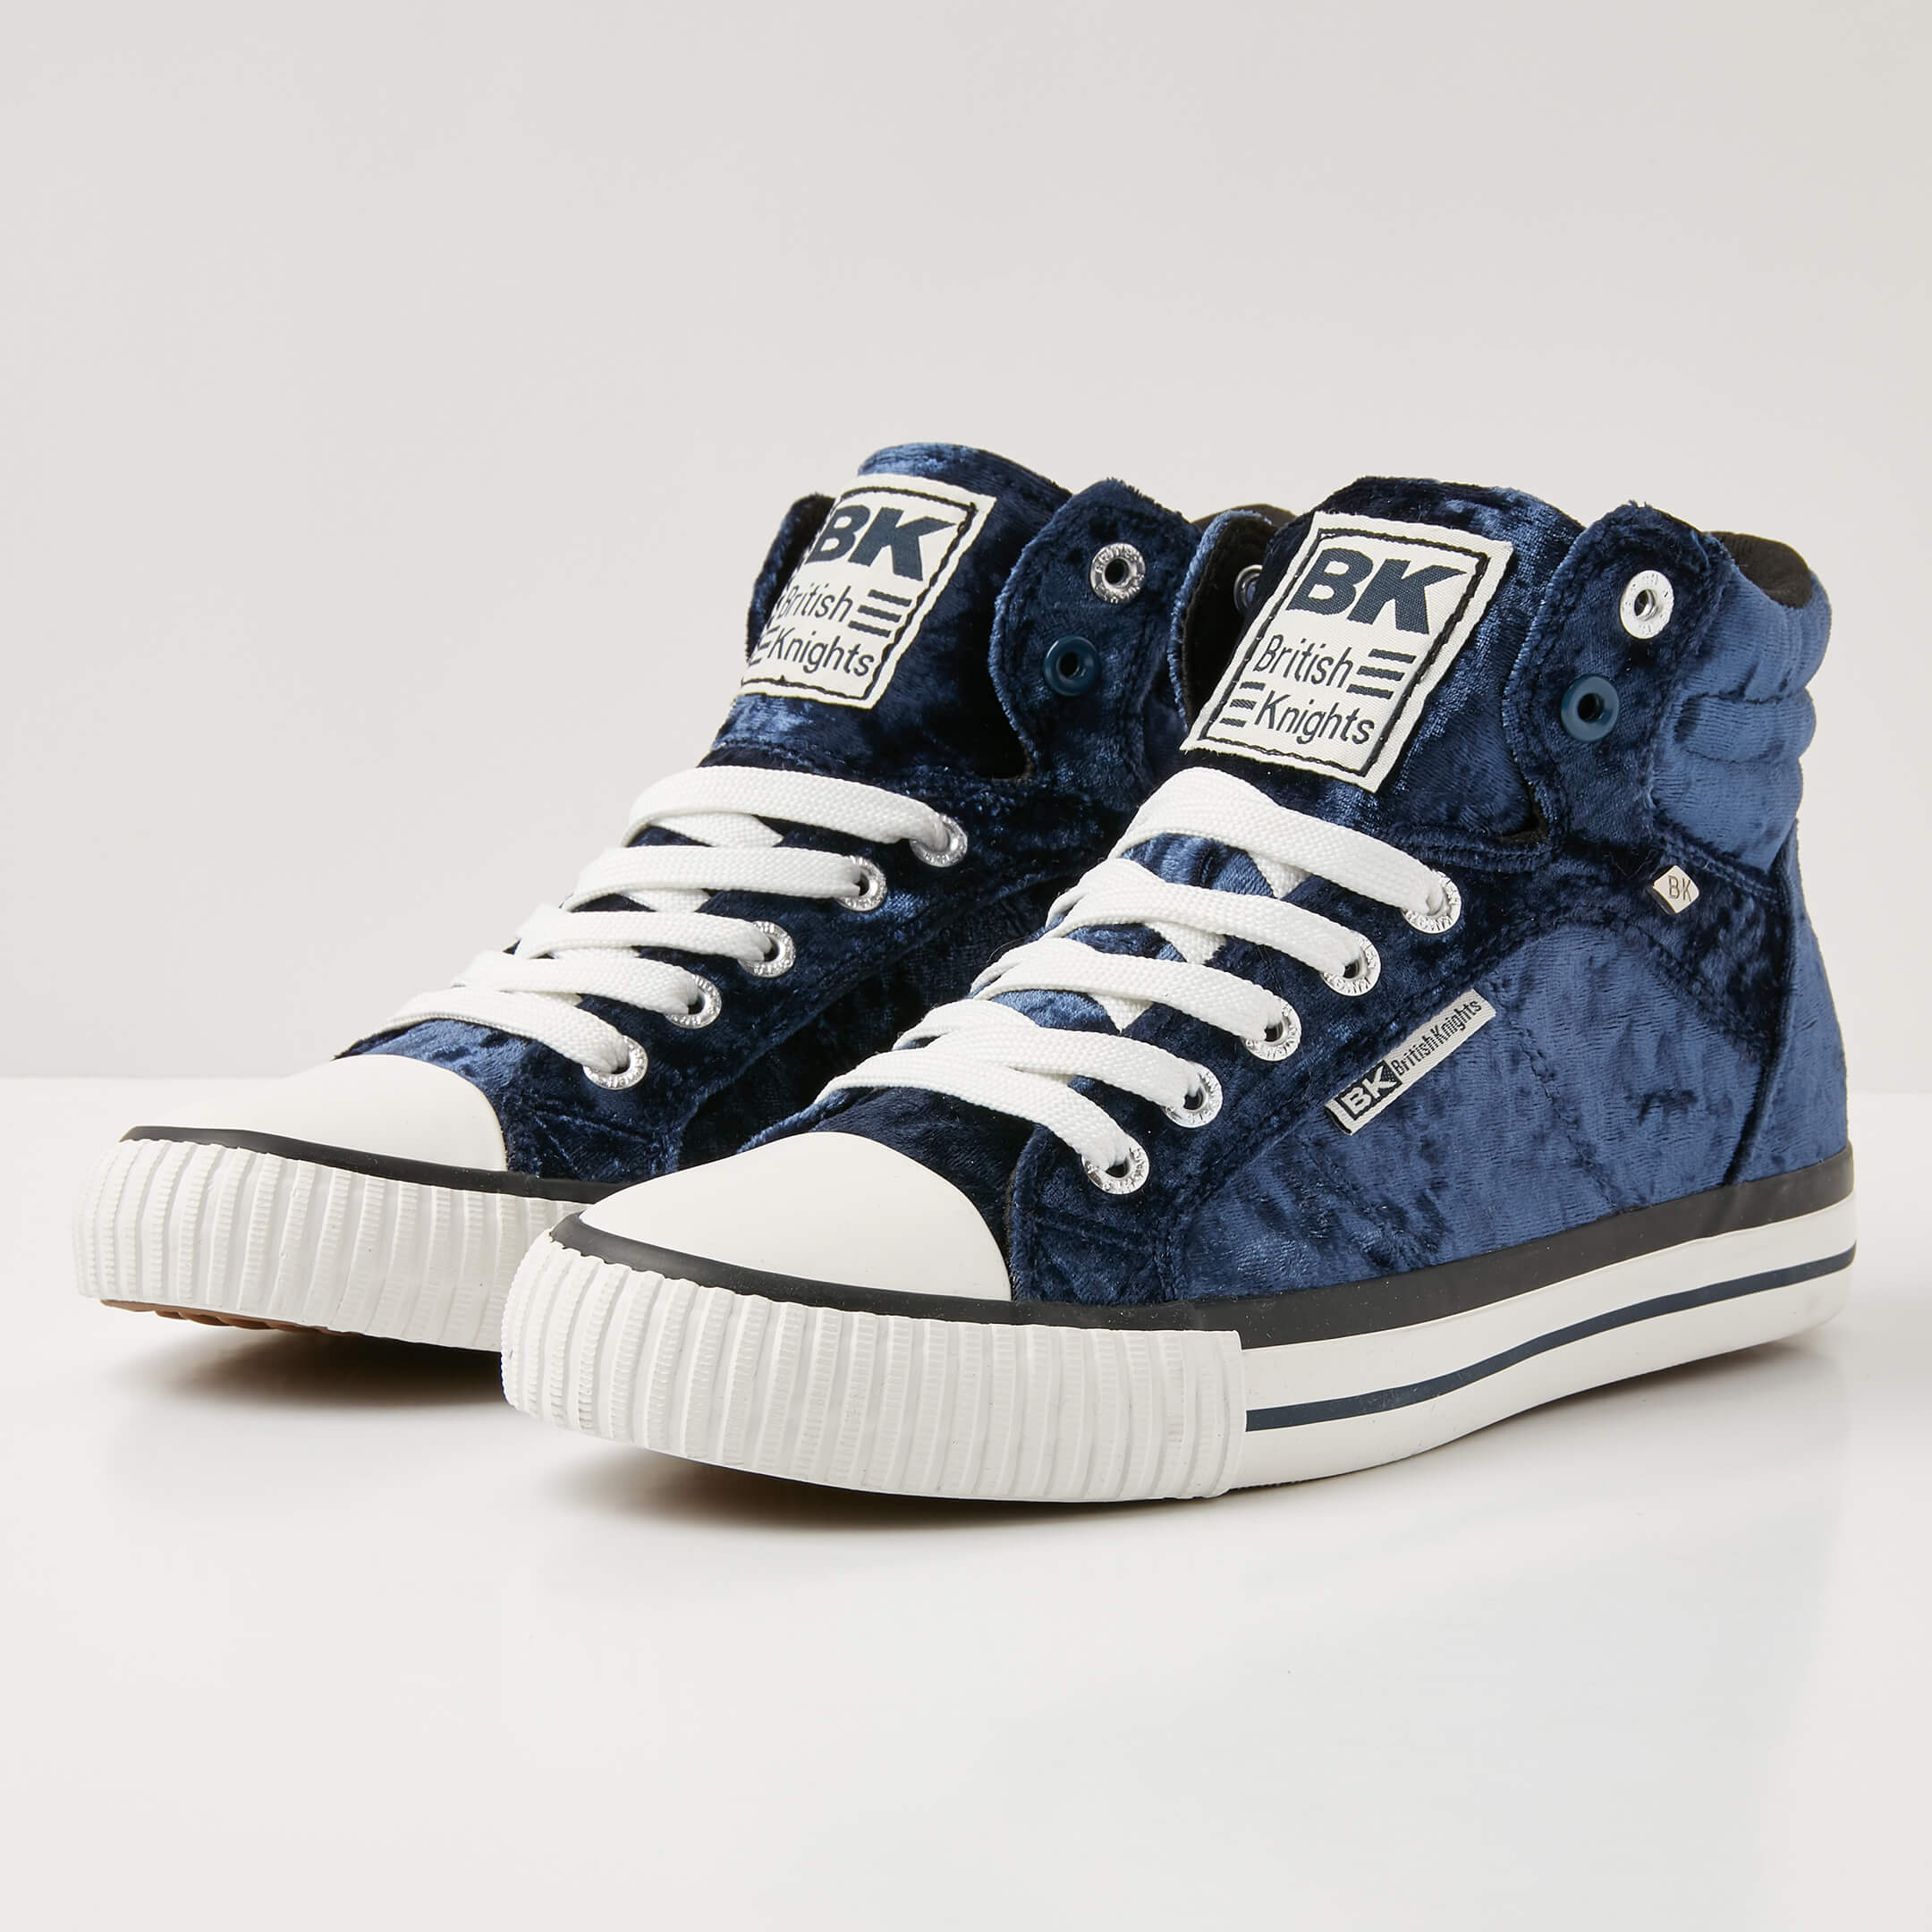 008cce4a145 British Knights dee dames sneakers hoog – donker blauw – maat 36 (blauw). British  Knights dee dames sneakers hoog – donker blauw – maat 36 ...